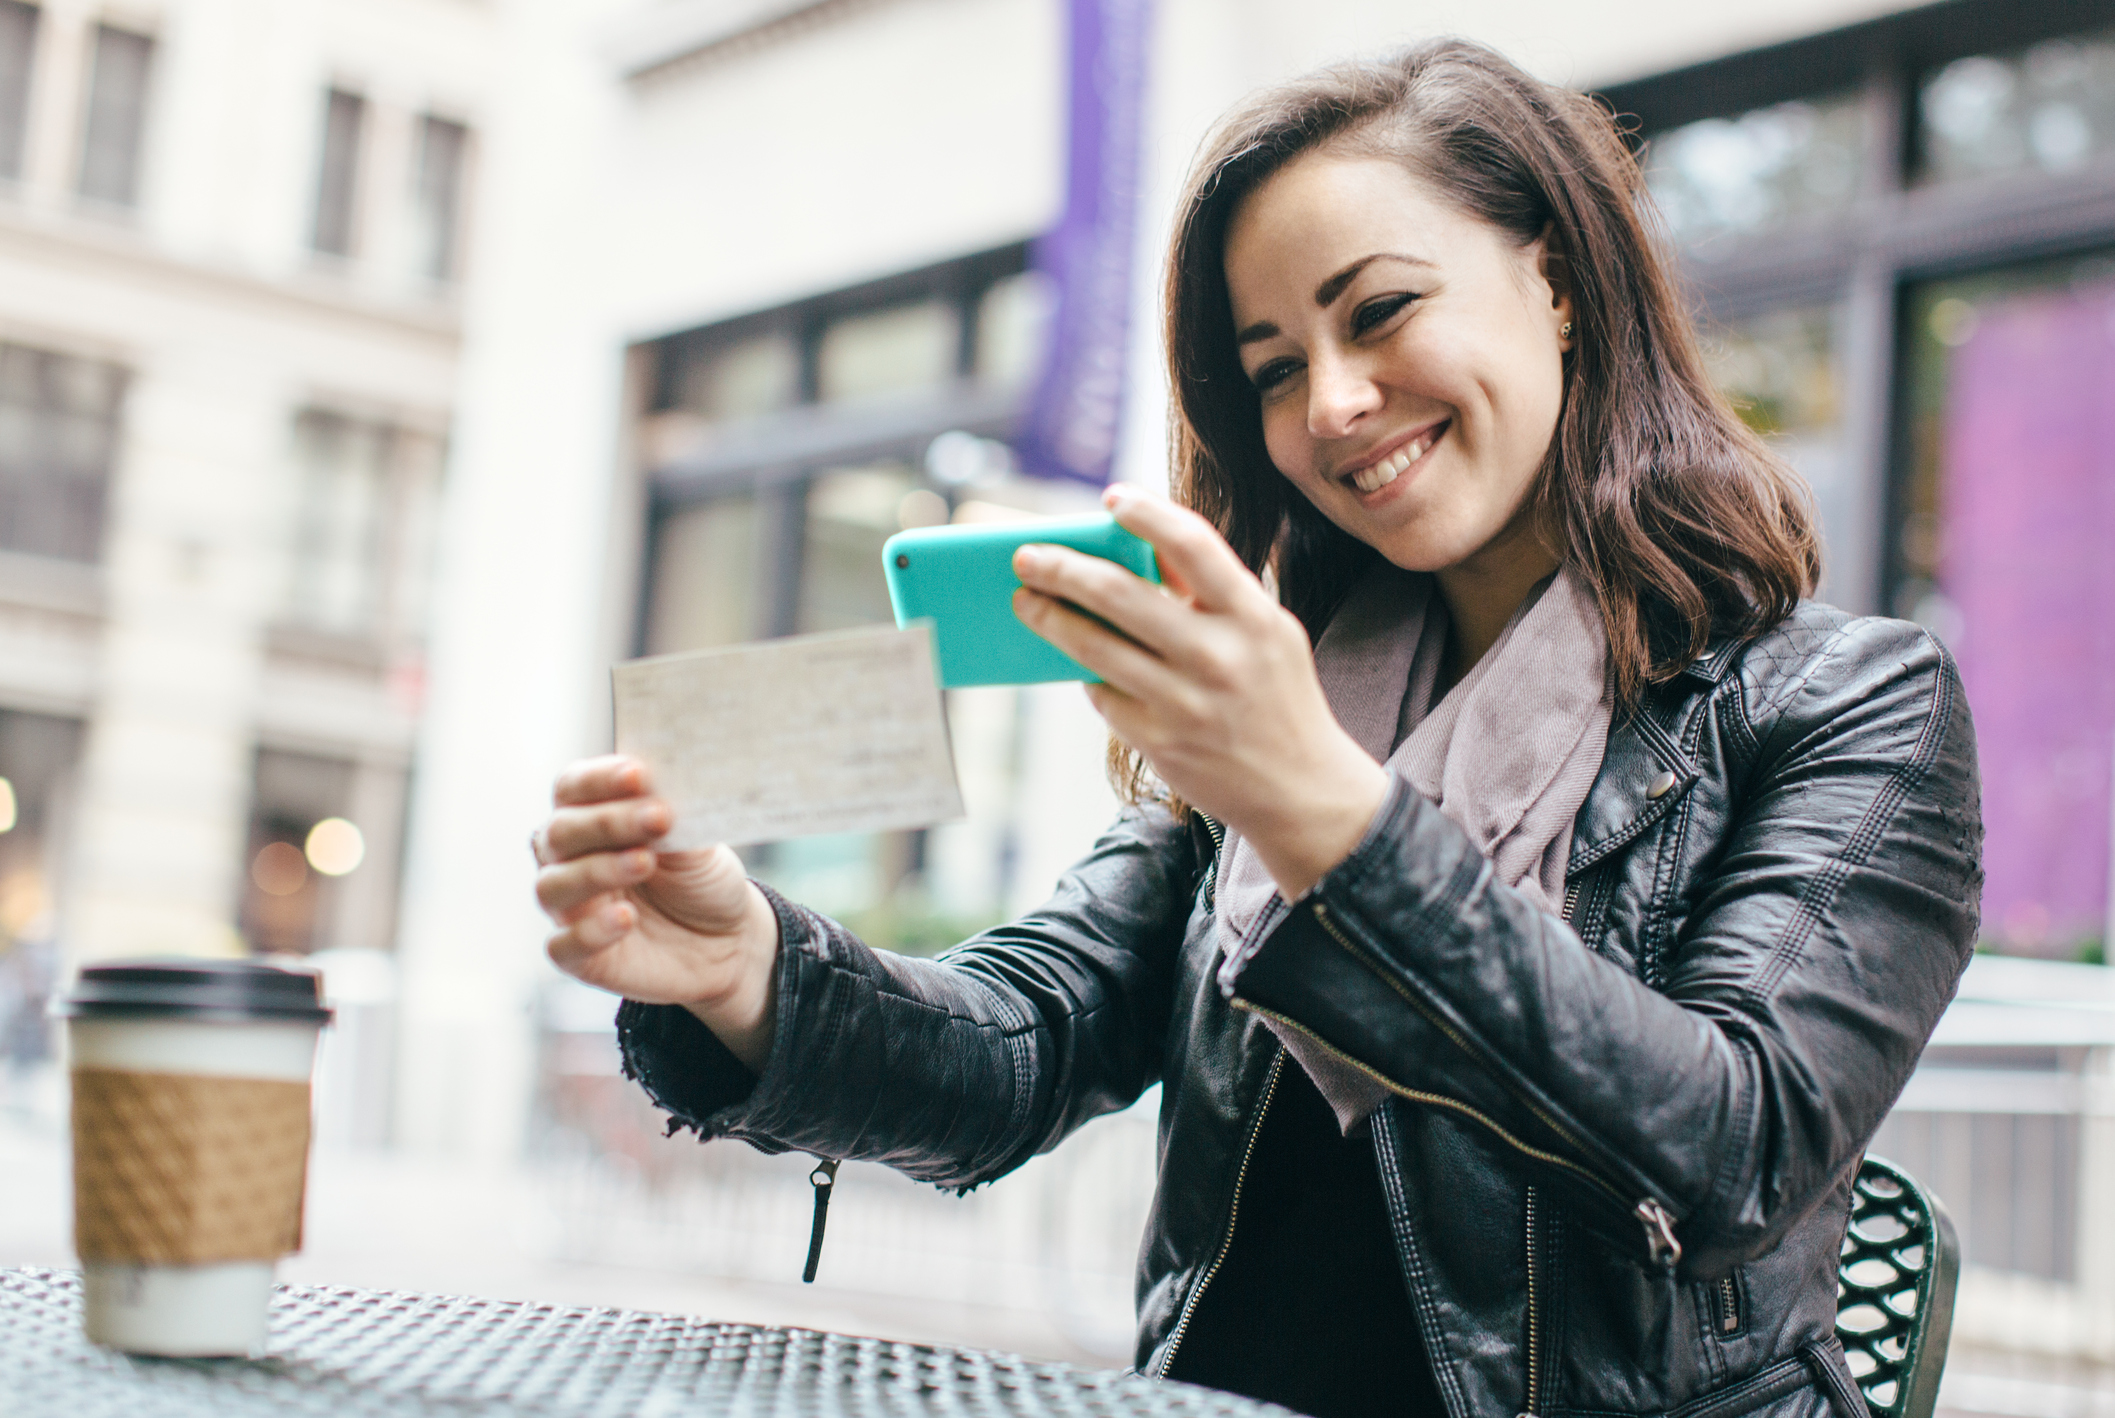 Highlights from PwC's 2017 Digital Banking Survey